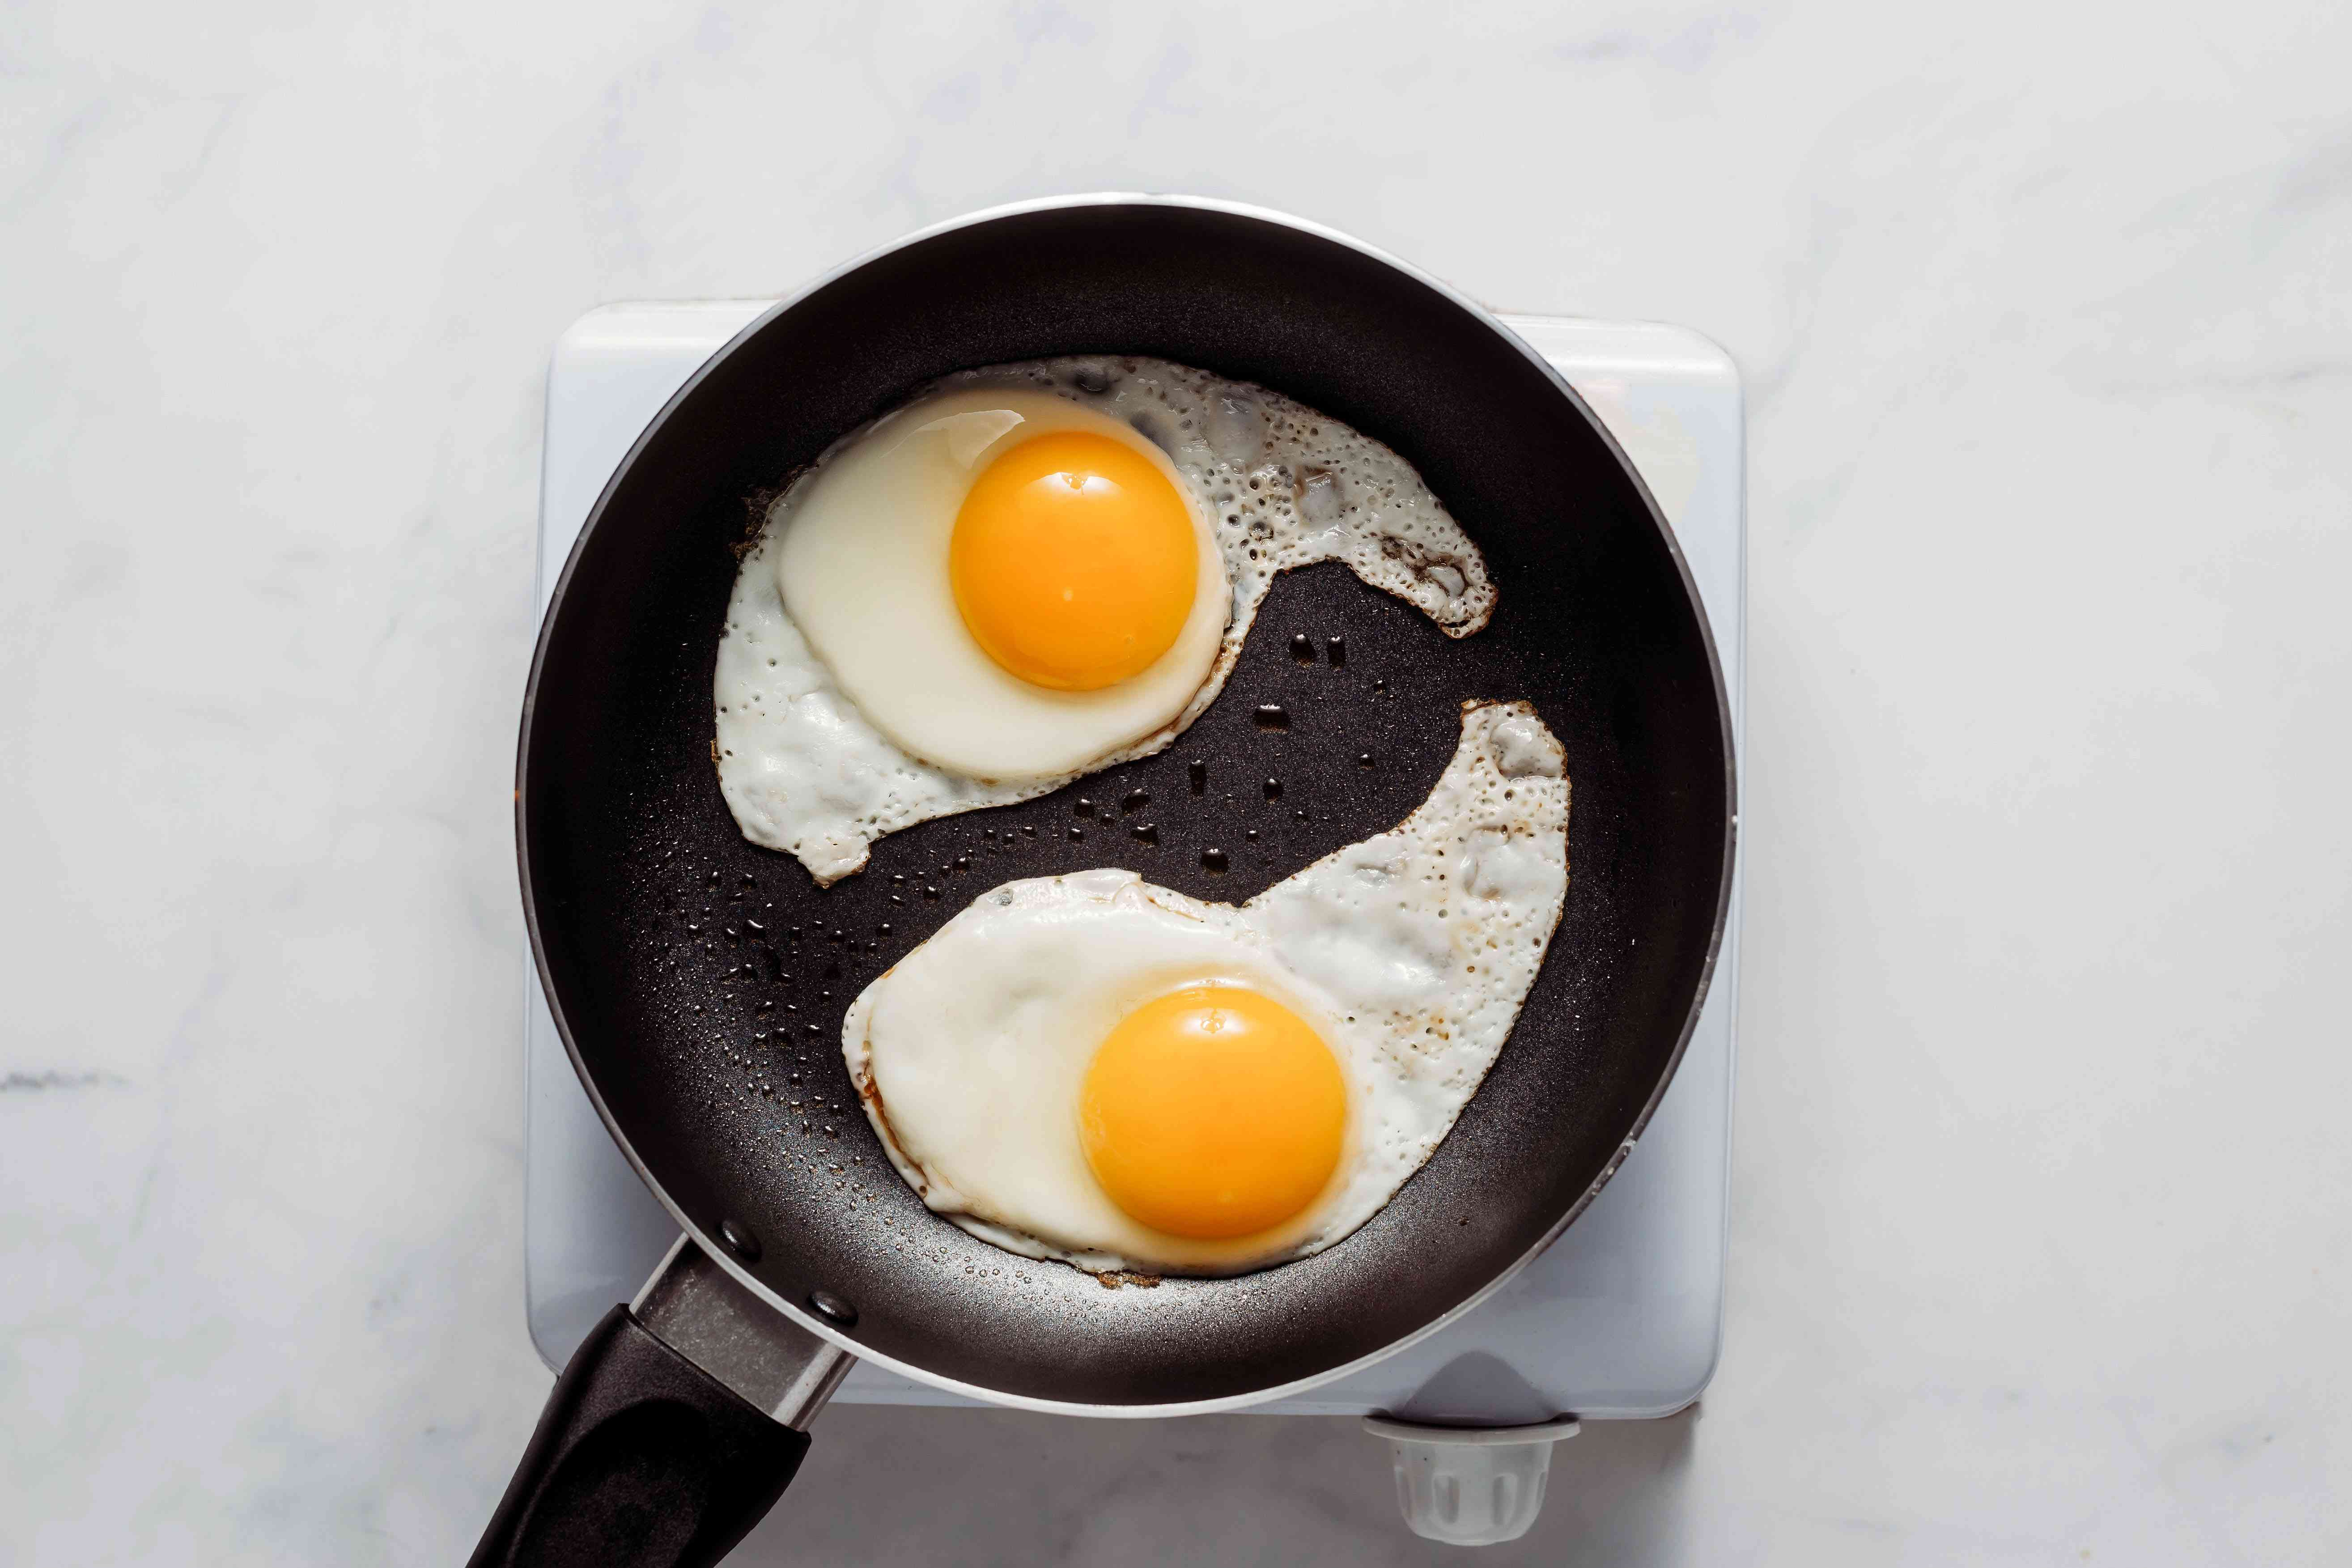 eggs frying in a skillet